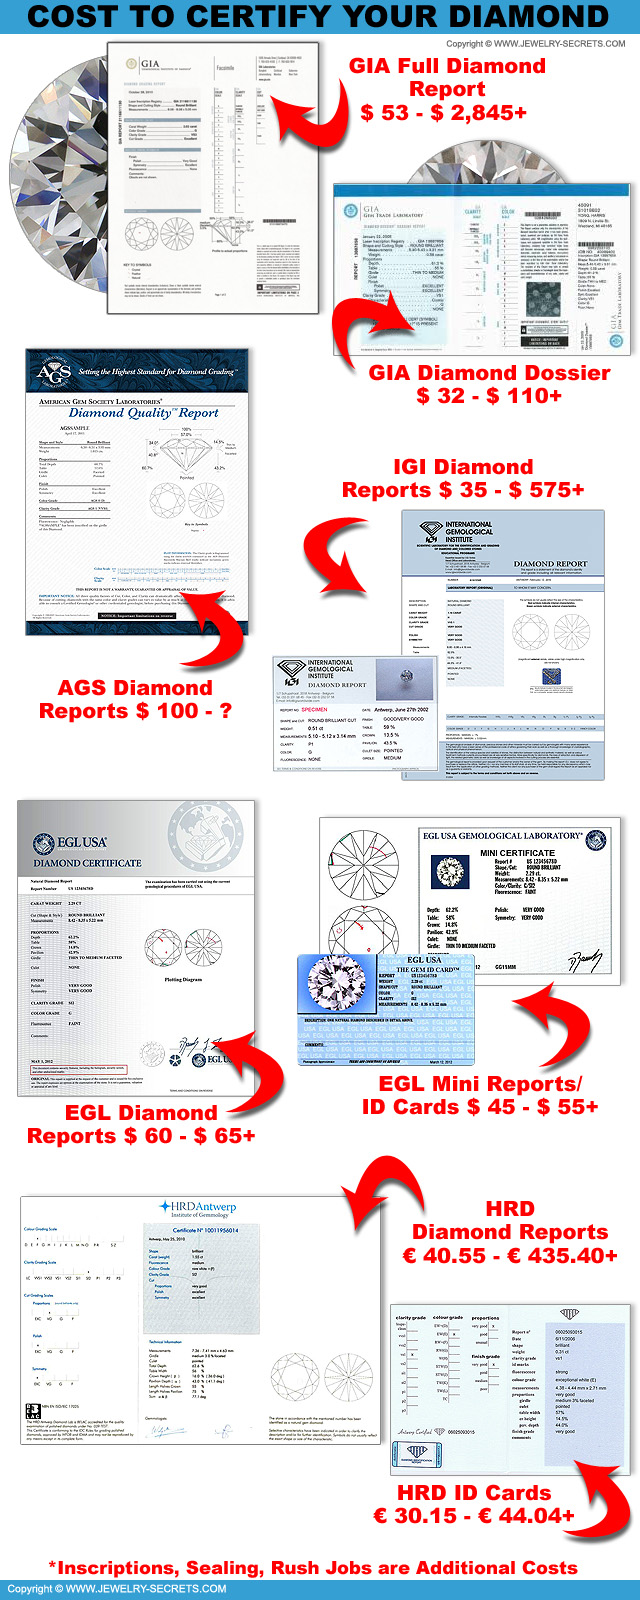 The Cost To Certify Your Diamond!